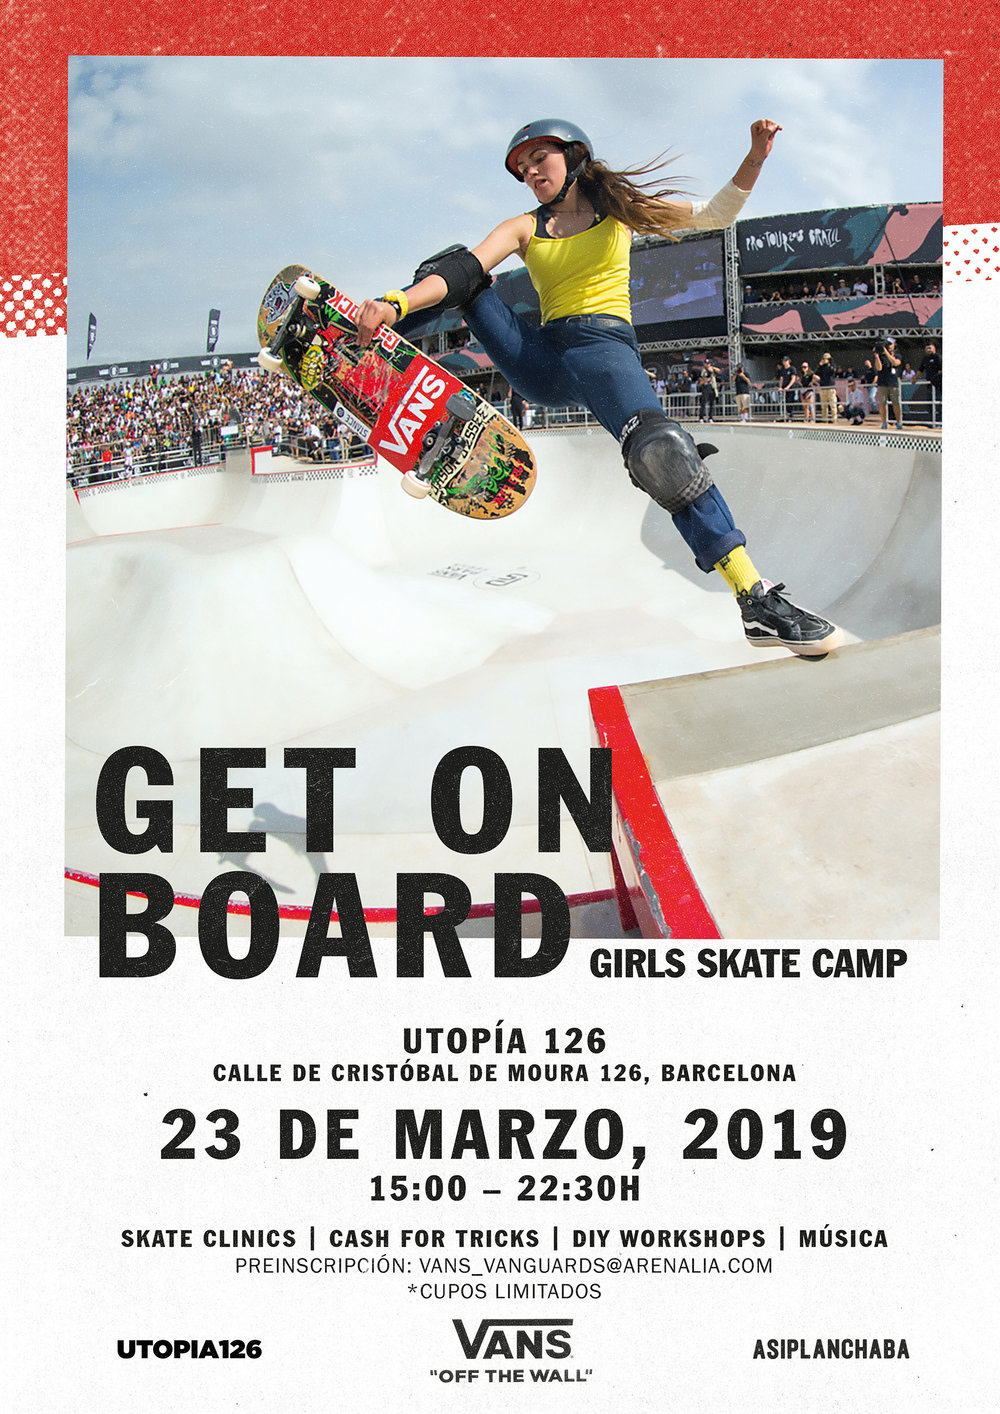 VANS GIRLS SKATE CAMP 2019 vanguards event